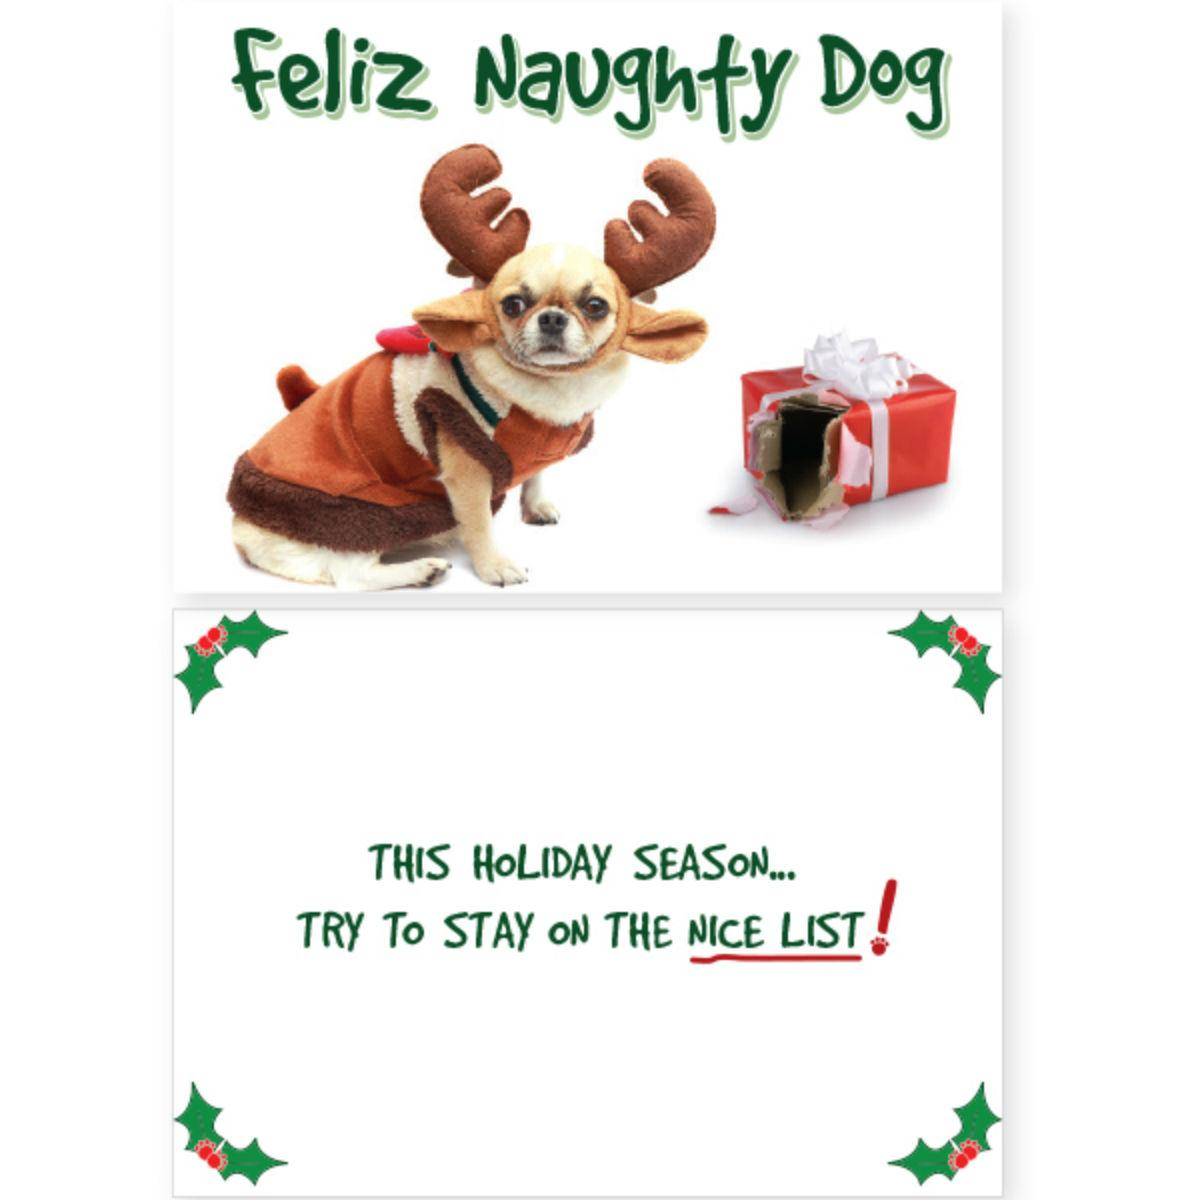 Holiday Greeting Card by Dog Speak - Feliz Naughty Dog